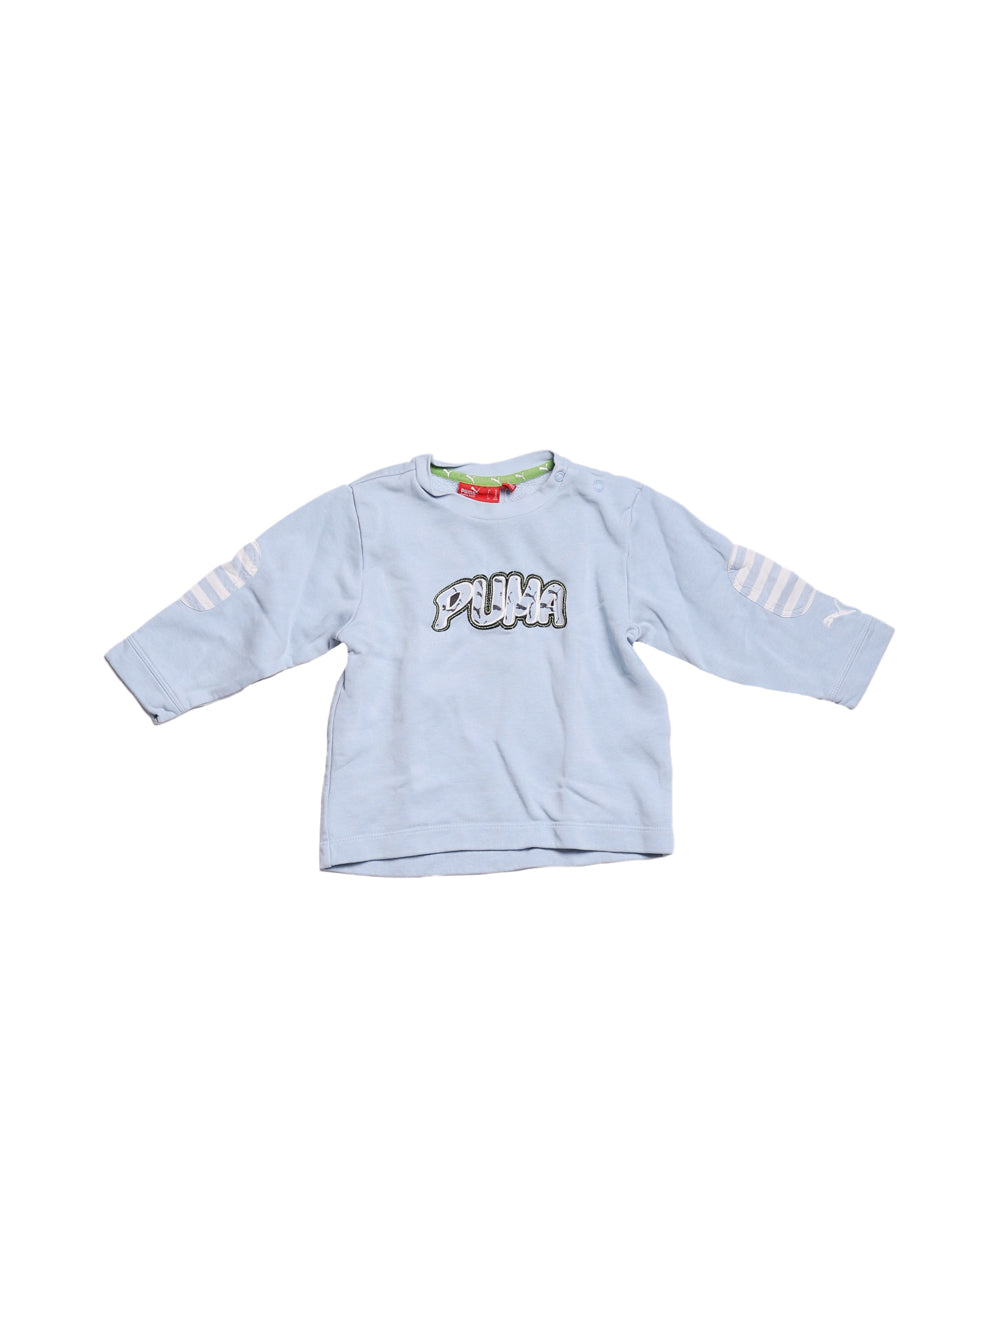 Front photo of Preloved Puma Light-blue Boy's sweatshirt - size 2-3 yrs